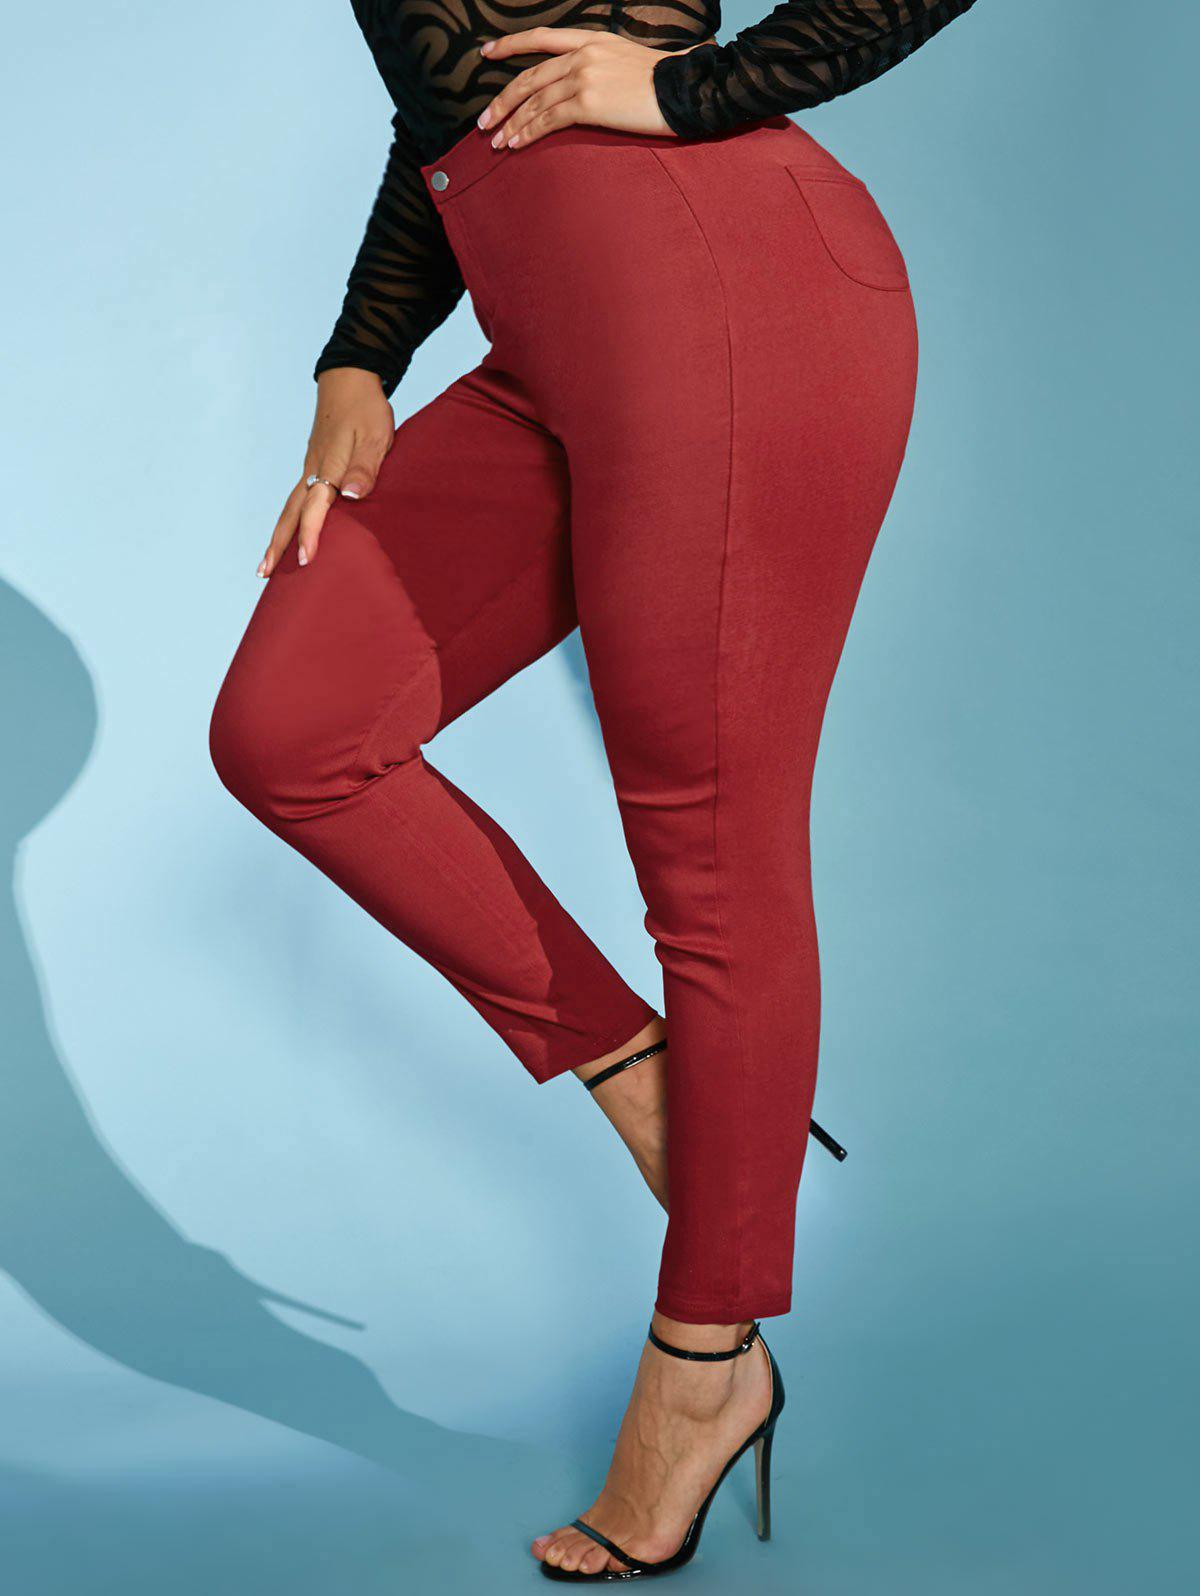 New High Waisted Colored Plus Size Skinny Pants